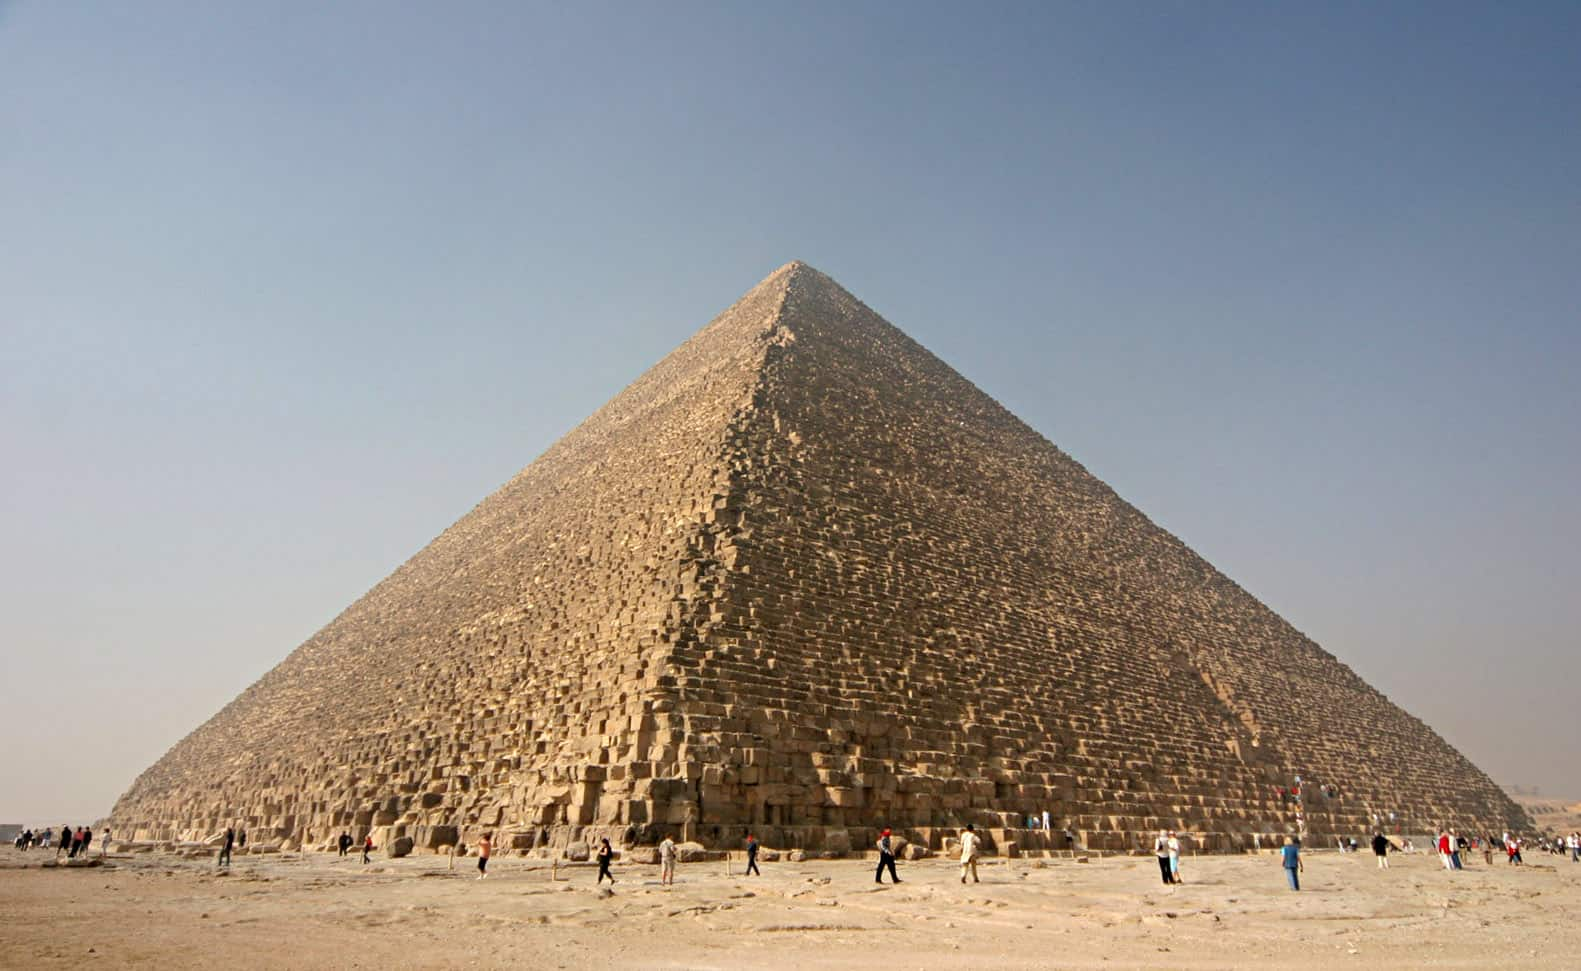 Khufu Pyramid, the great pyramids of Giza